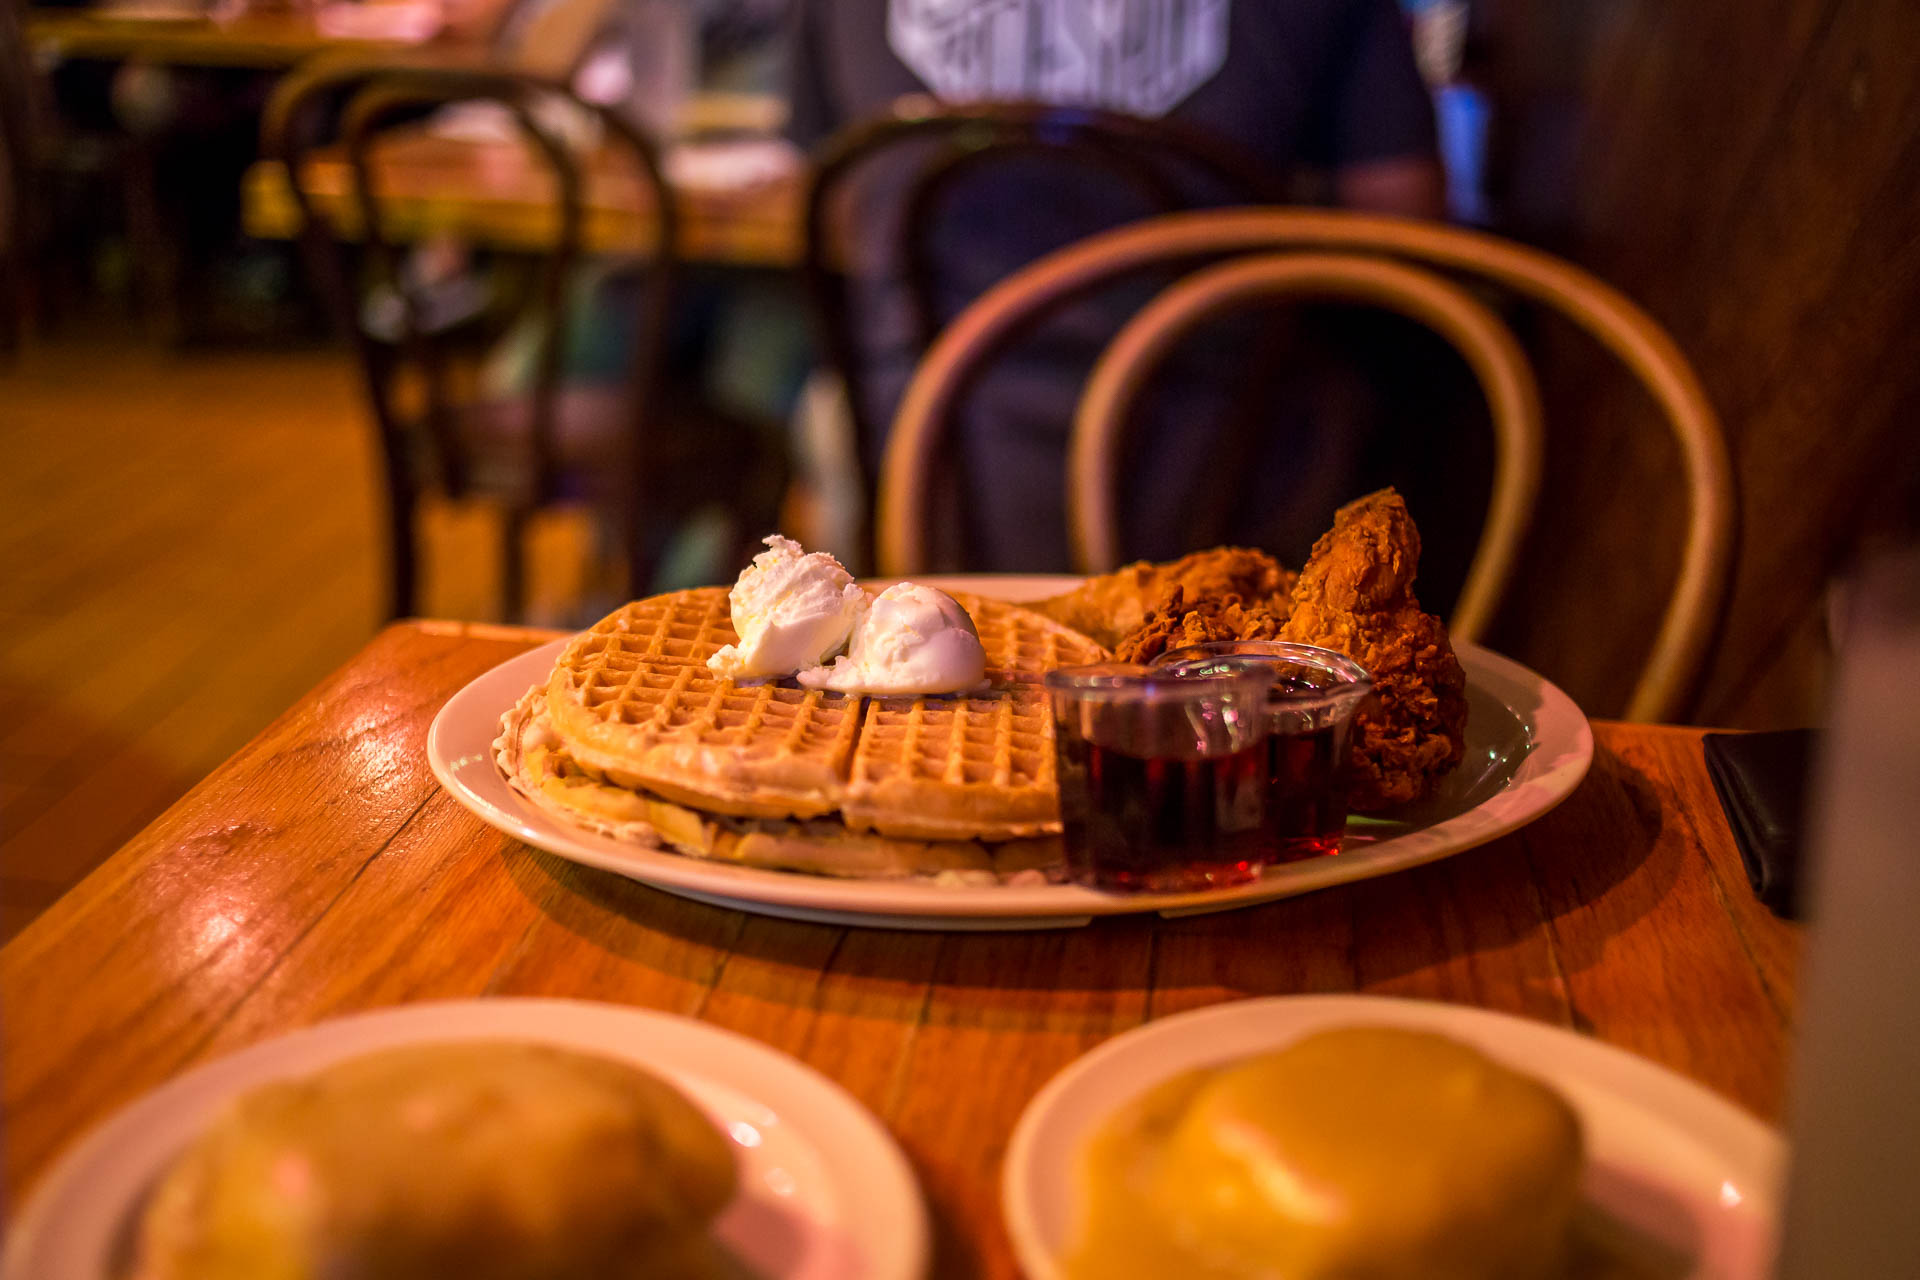 Roscoe's Fried Chicken and Waffles